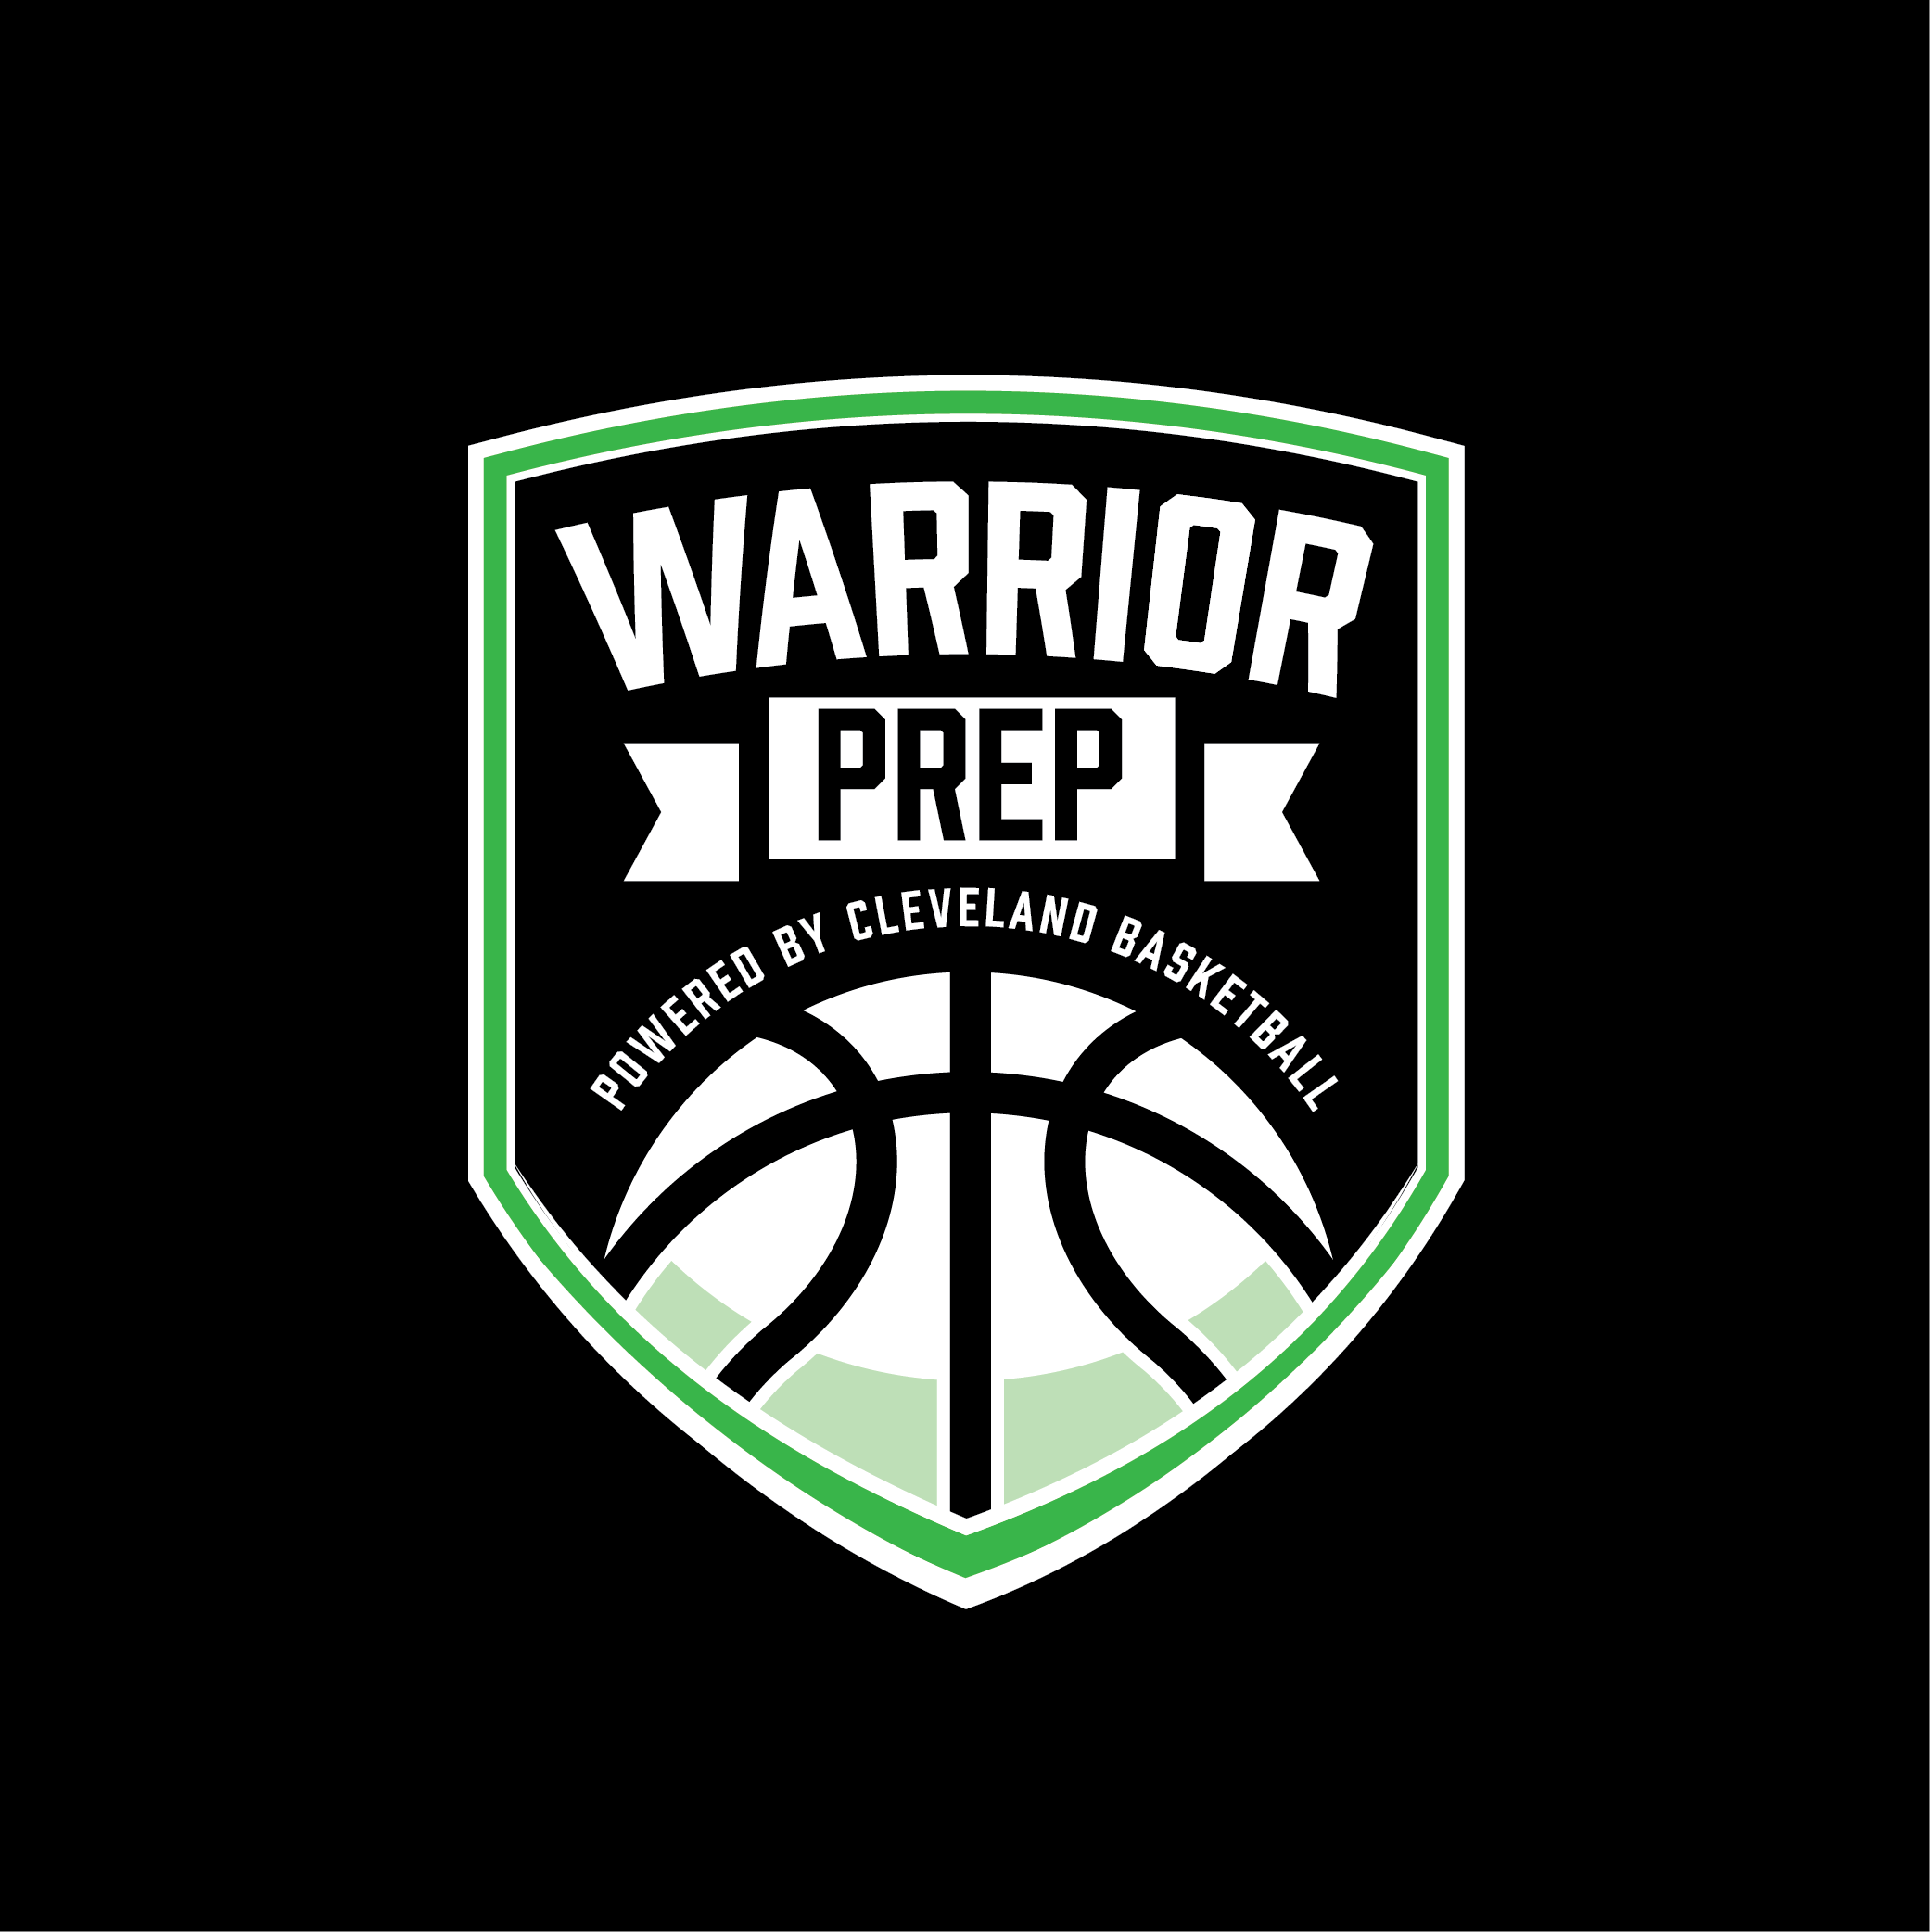 Warrior Prep Teams - (Advanced Skill)Grades 5th-8th1 team per gradeTRYOUTS: $10Tryout Dates: mid-late August(Tentative August 24th & 25th w/ possible makeup August 31)